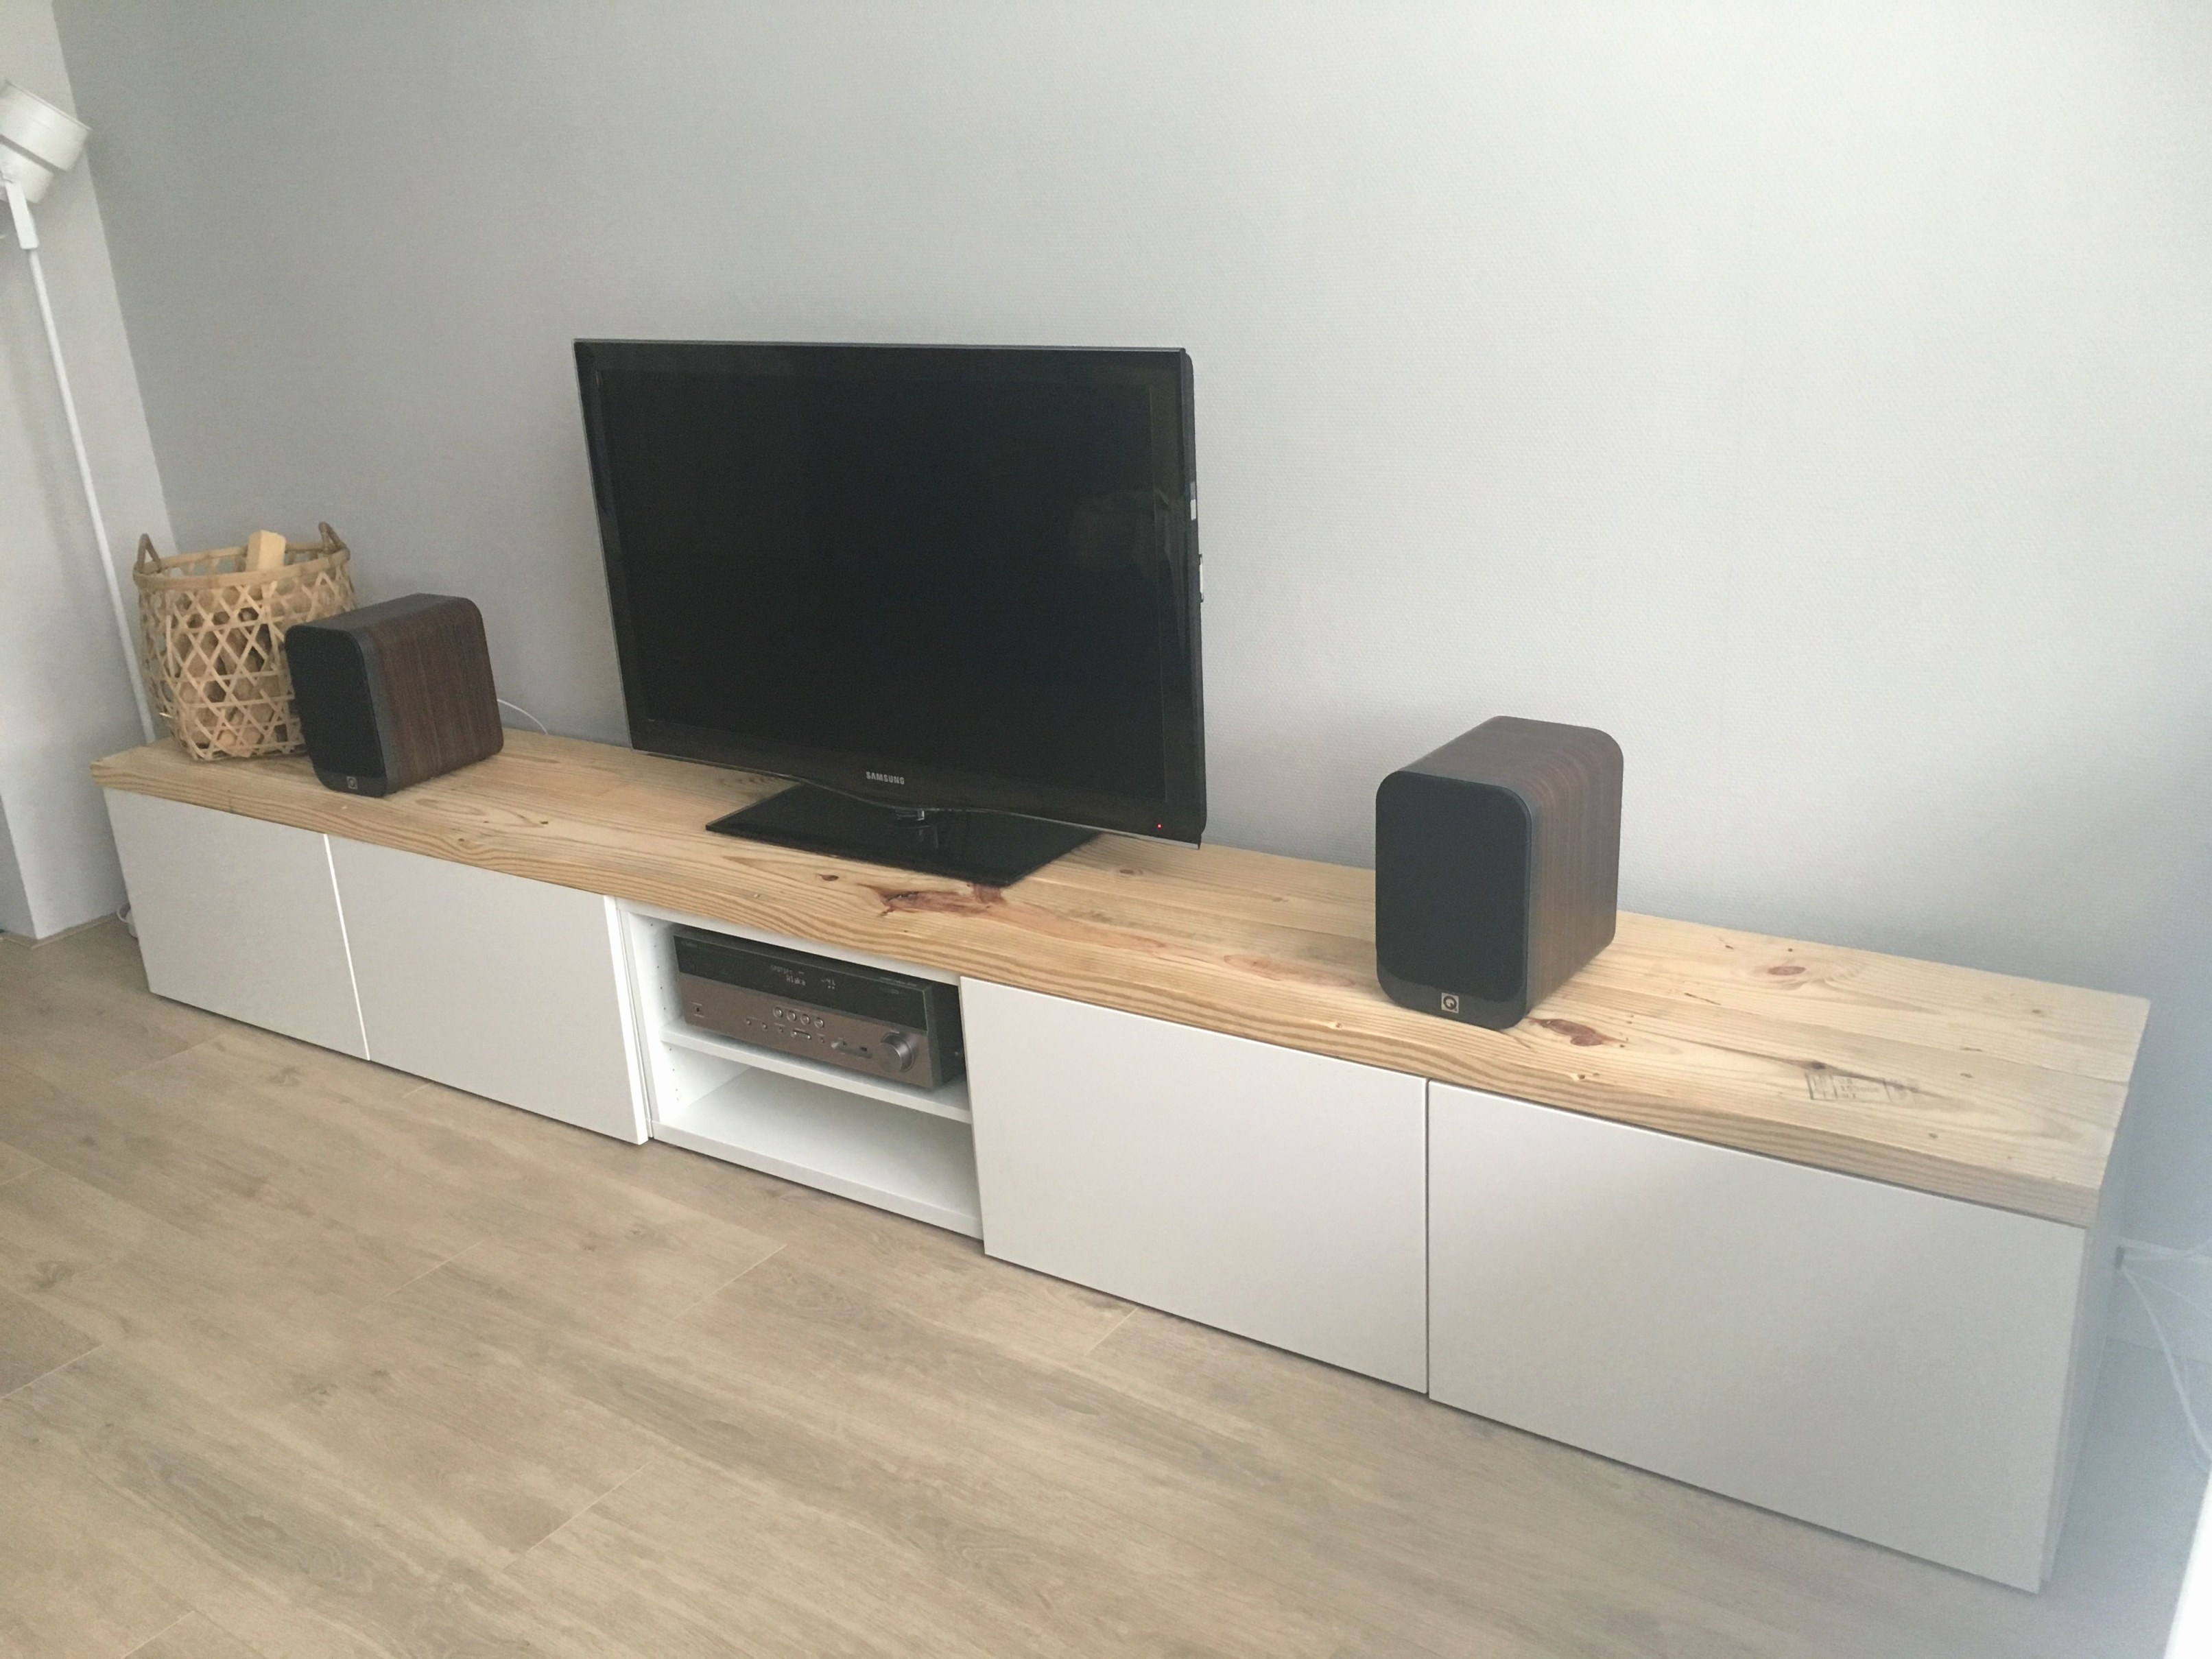 Ikea Hack Sideboard Genial Ikea Sideboard Tv Stand Branché Meuble Tv Led Ikea ¢‹†…¡ Lack Corner